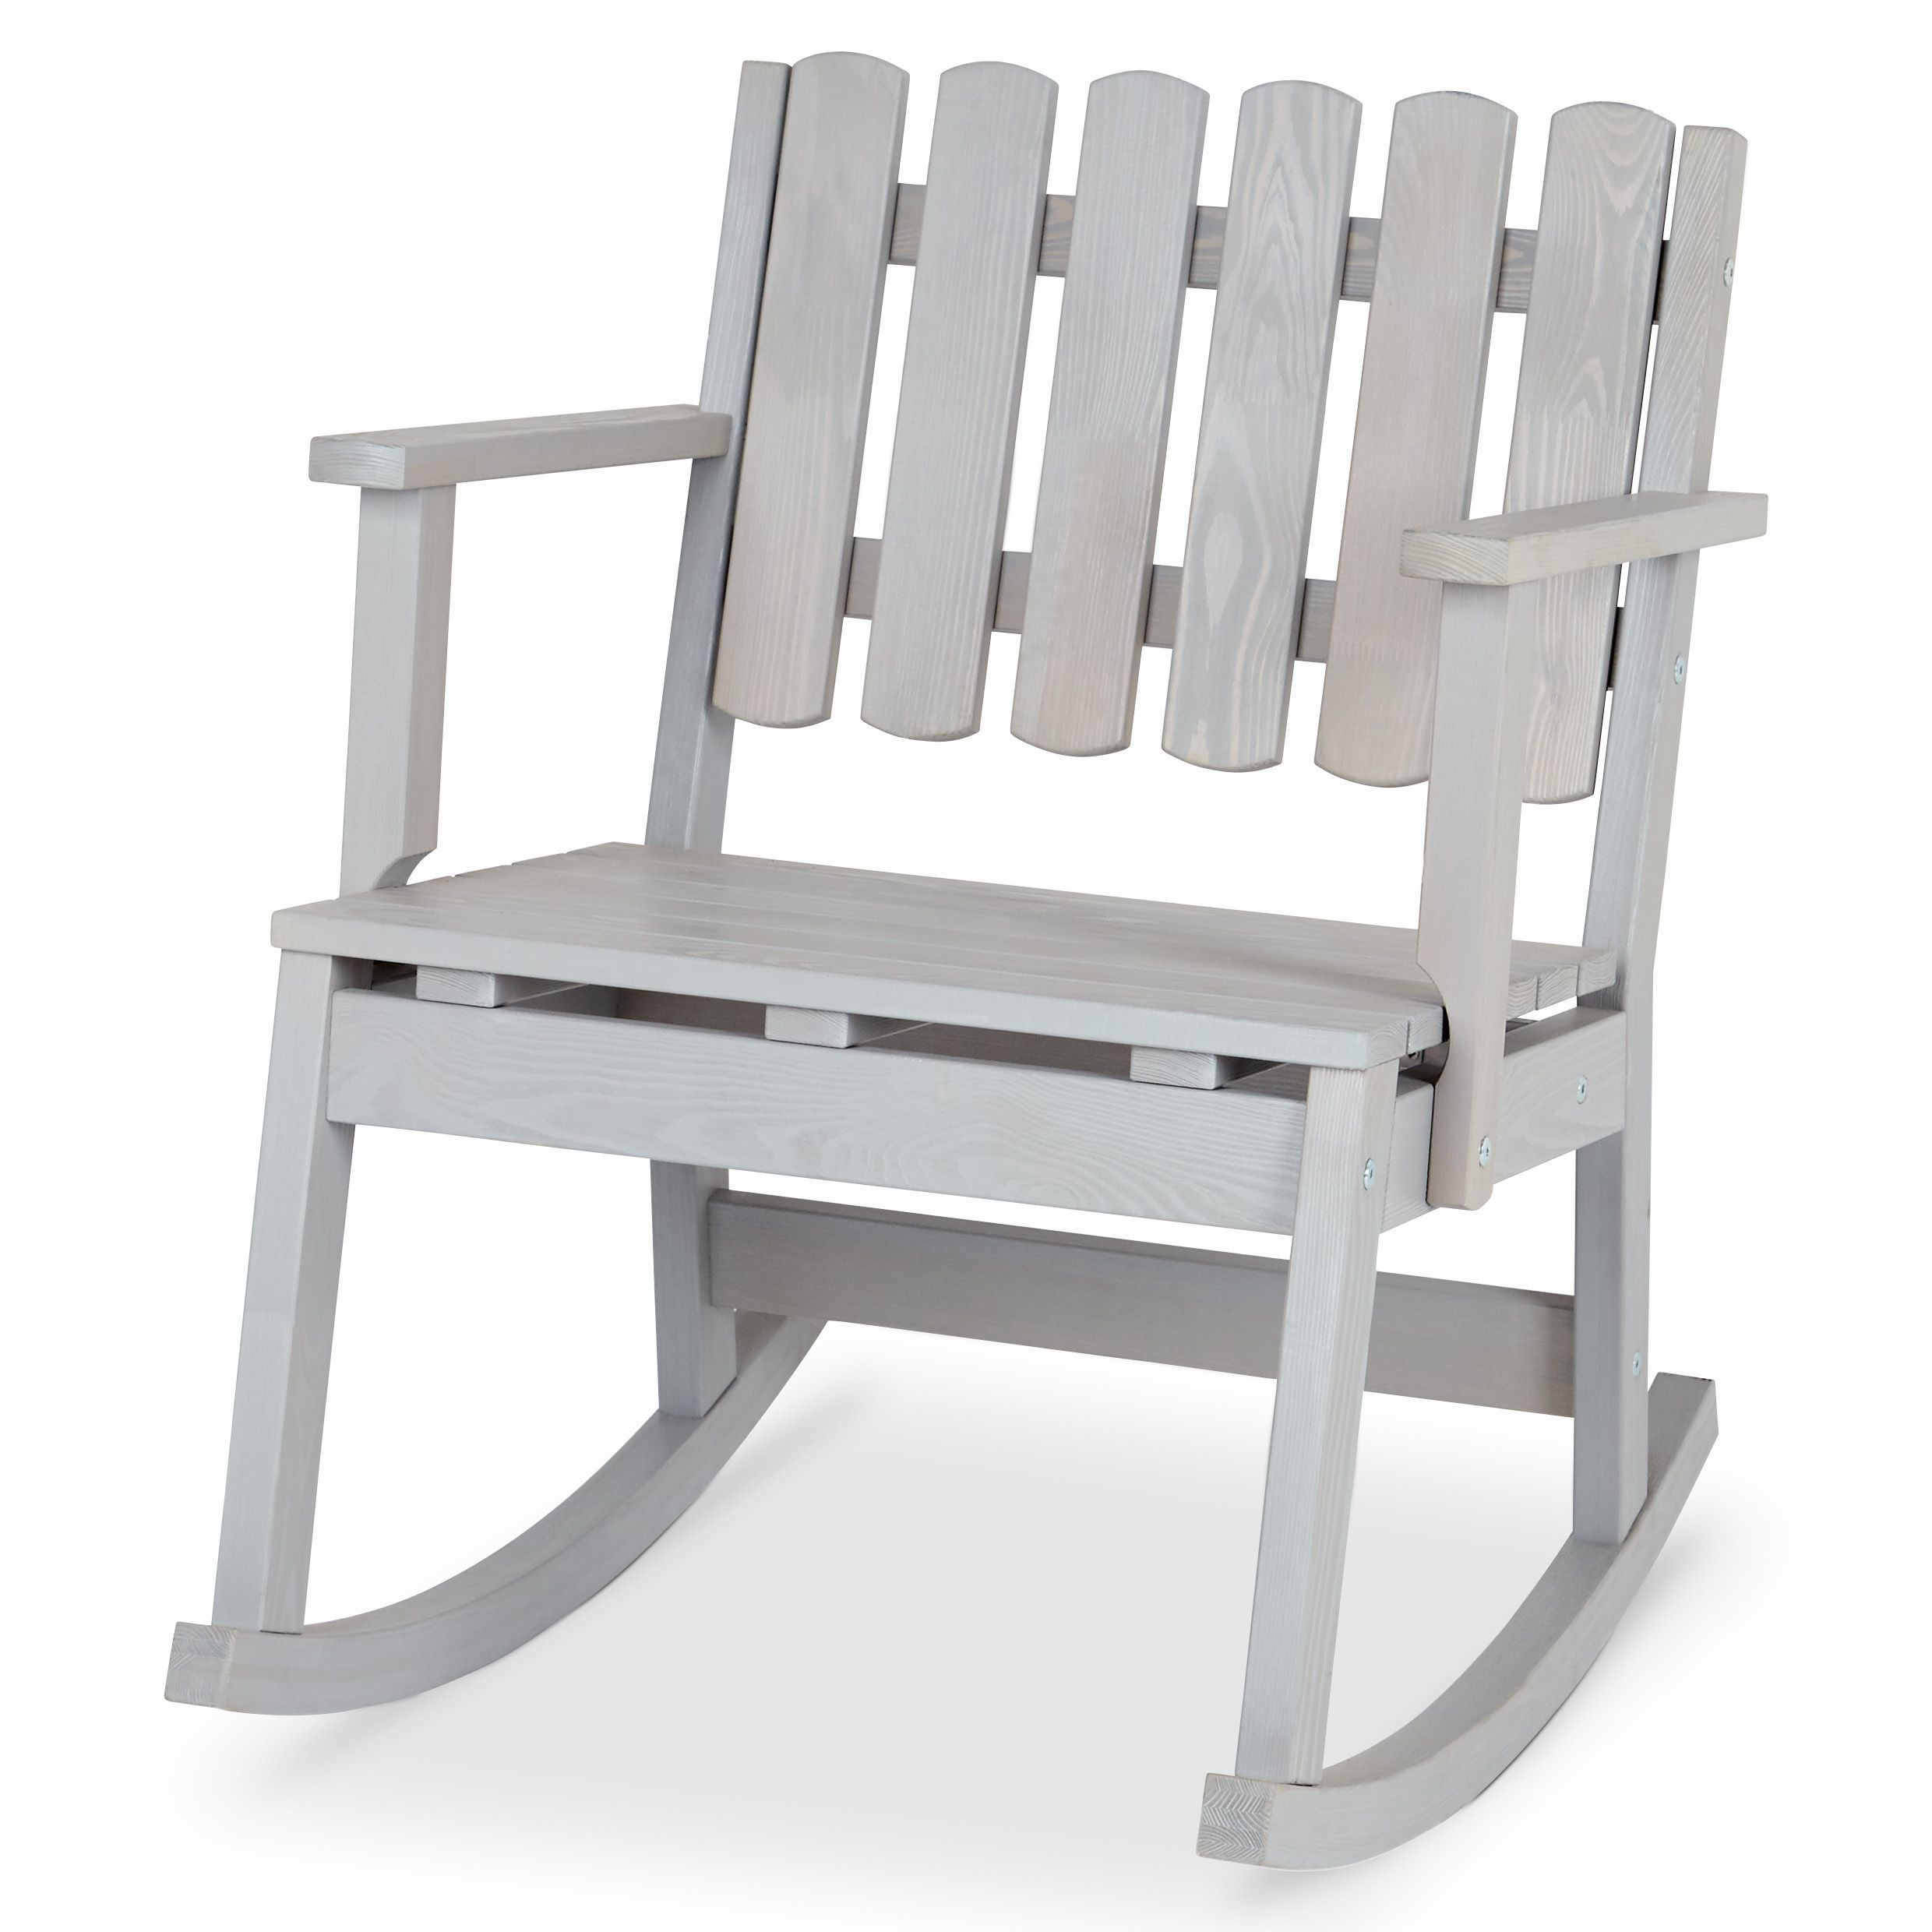 Miraculous Rural Wooden Single Rocking Chair Bq For All Your Home Ibusinesslaw Wood Chair Design Ideas Ibusinesslaworg